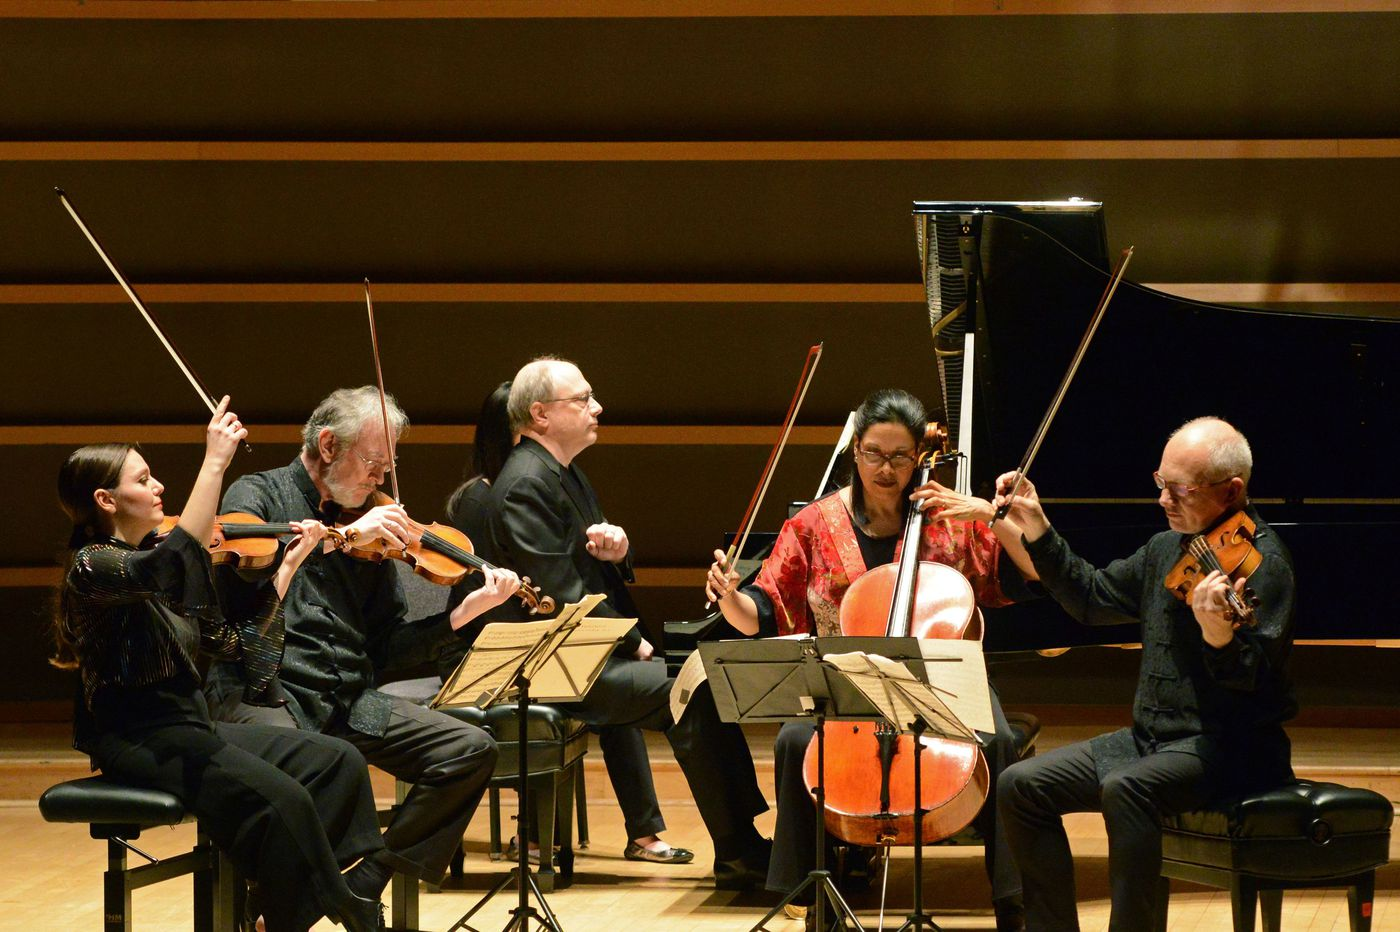 Ever anew, the Juilliard String Quartet is joined by pianist Marc-André Hamelin at the Kimmel Center